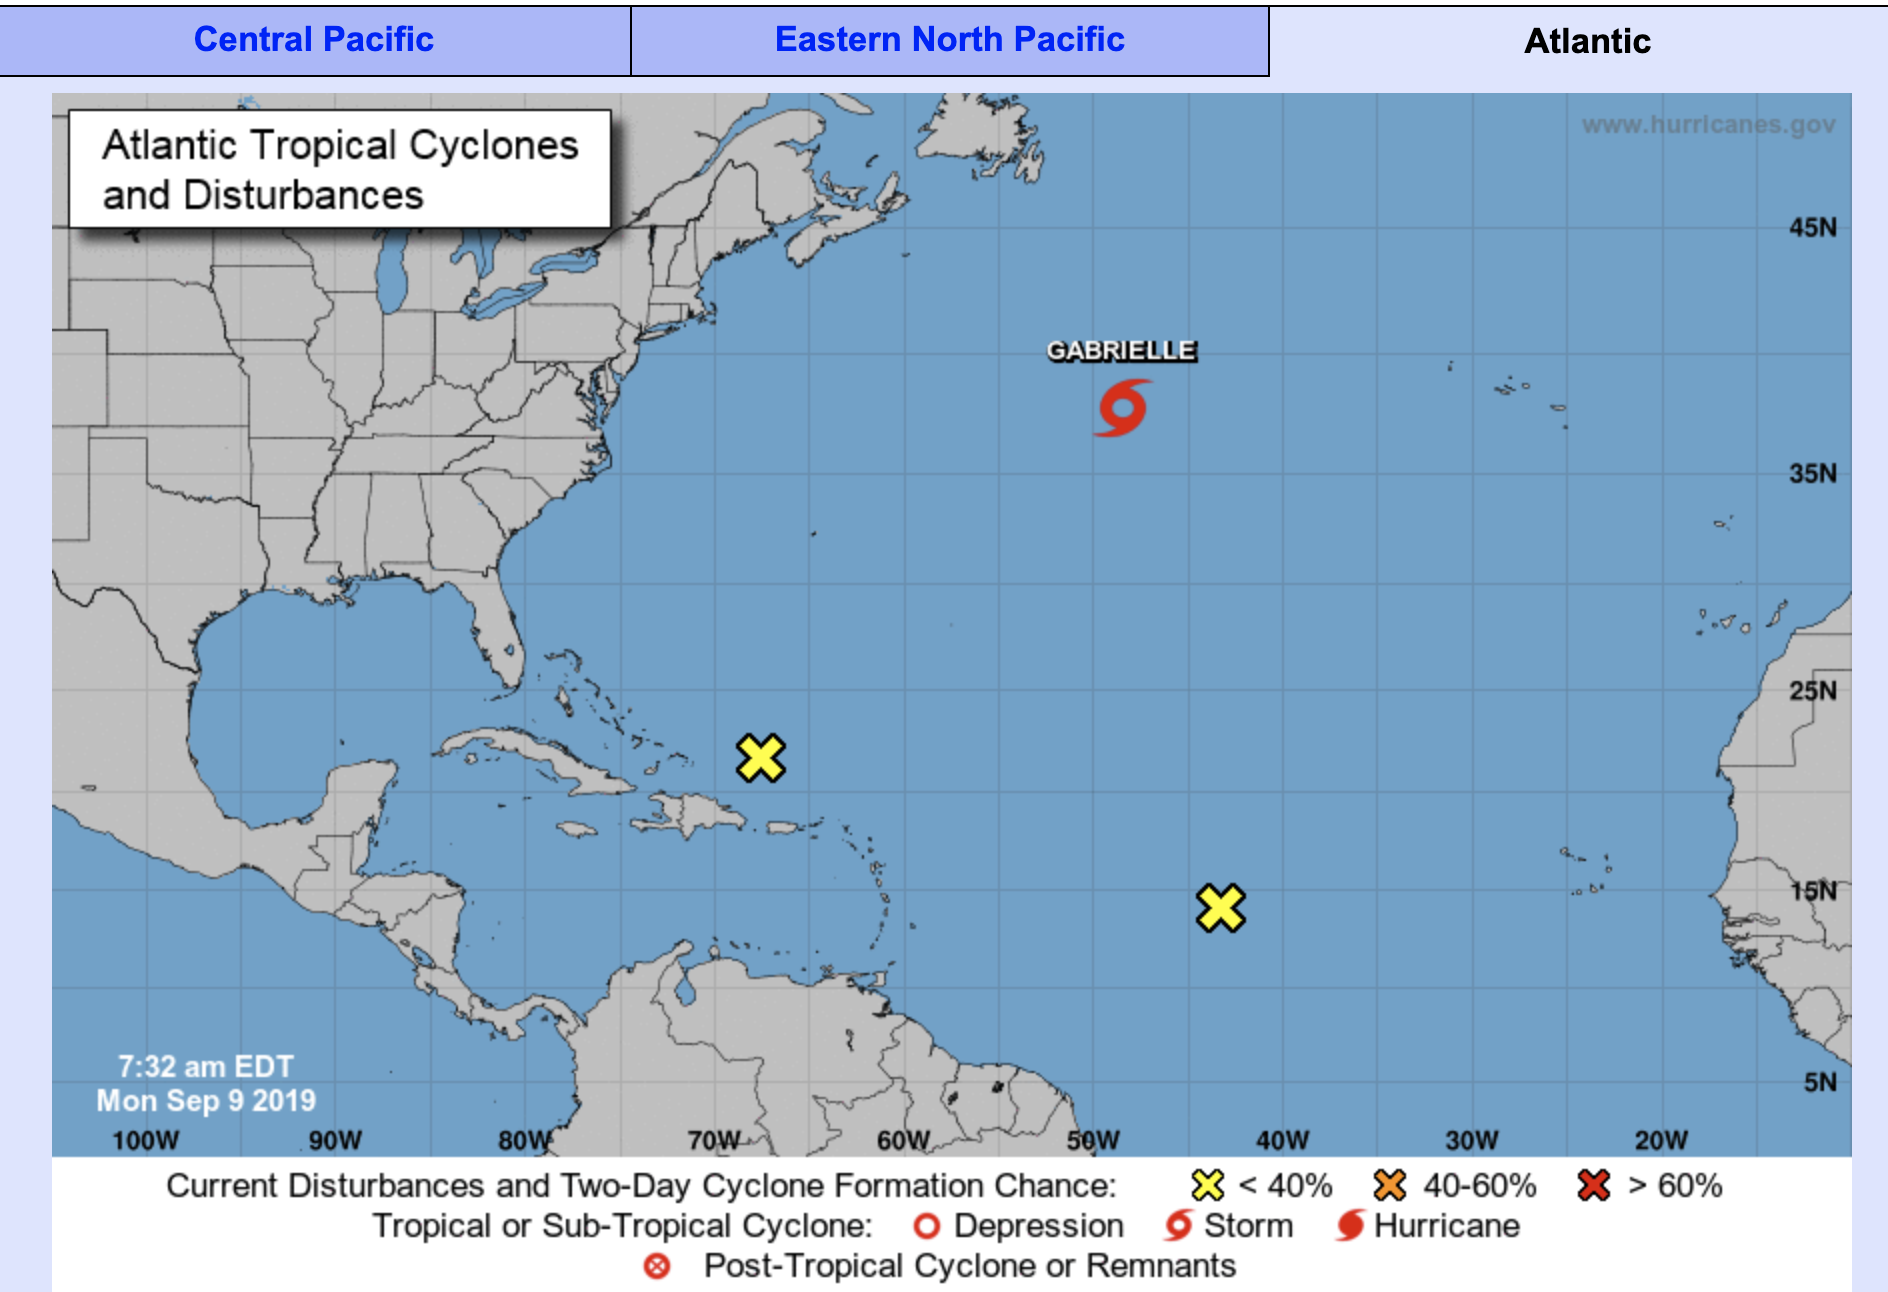 Two areas of concern in the Tropics